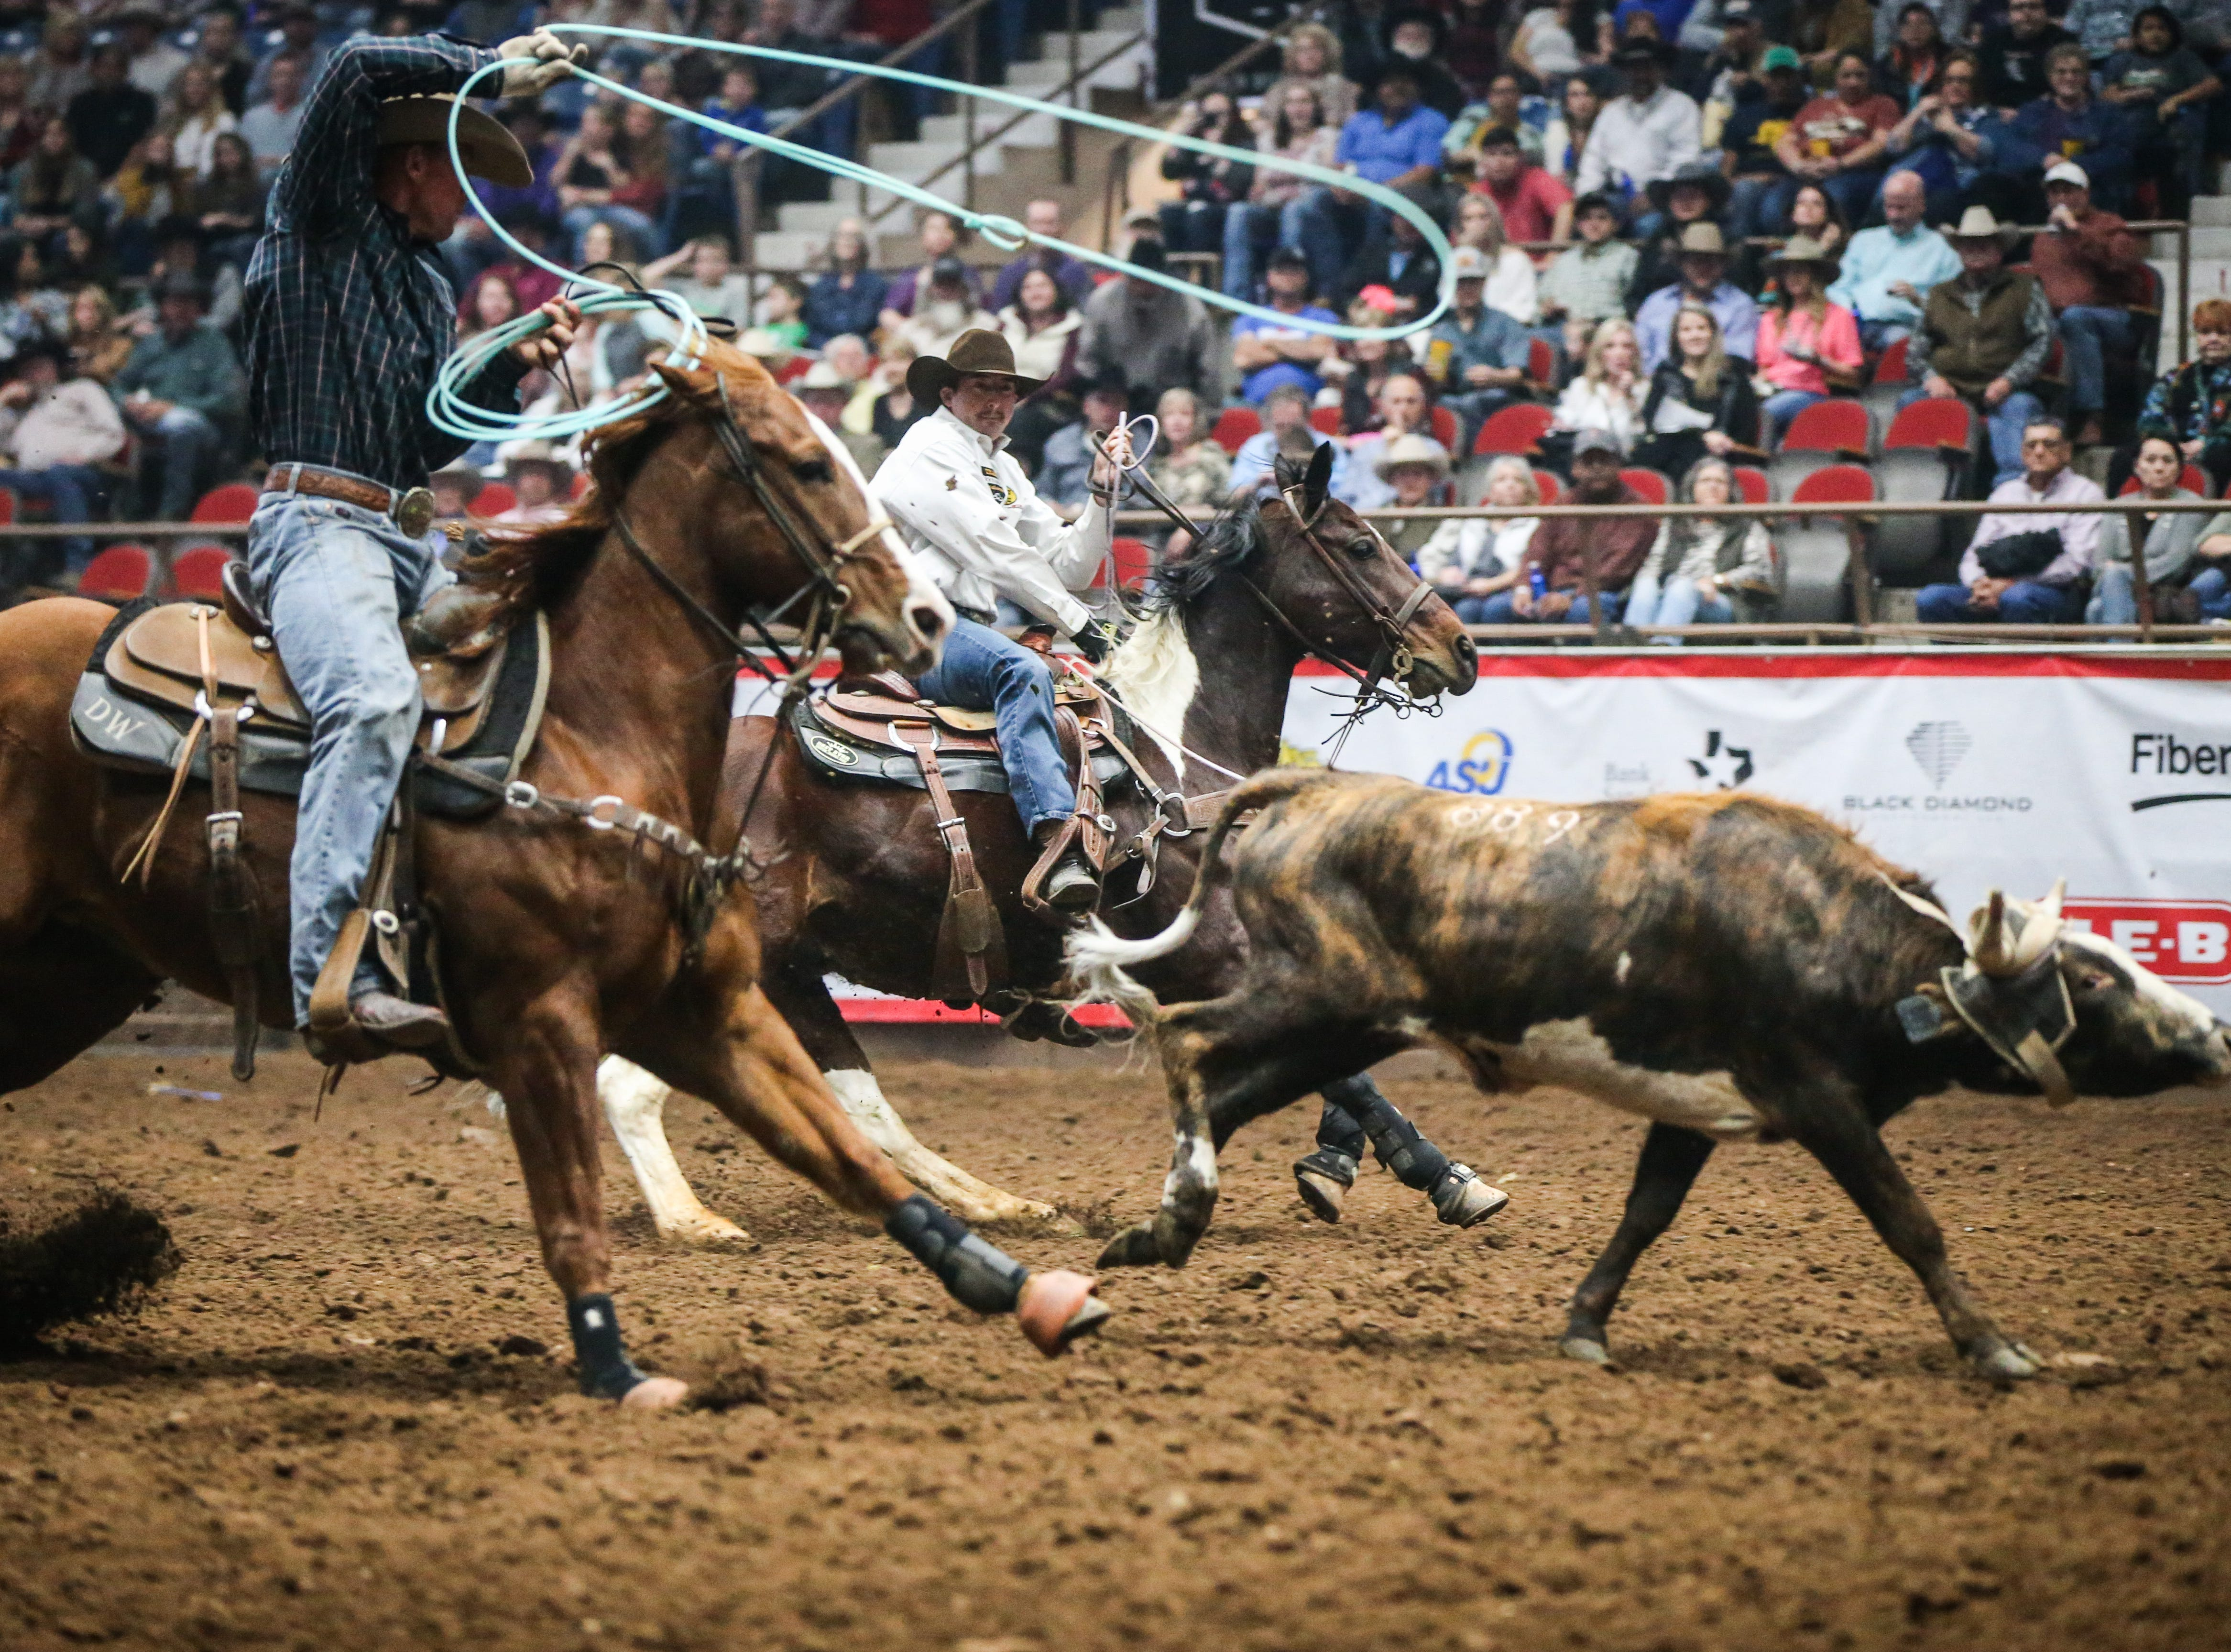 Lane Santos Karney, back, and Dillon Wingereid team rope during finals of the San Angelo Stock Show & Rodeo Friday, Feb. 15, 2019, at Foster Communications Coliseum.